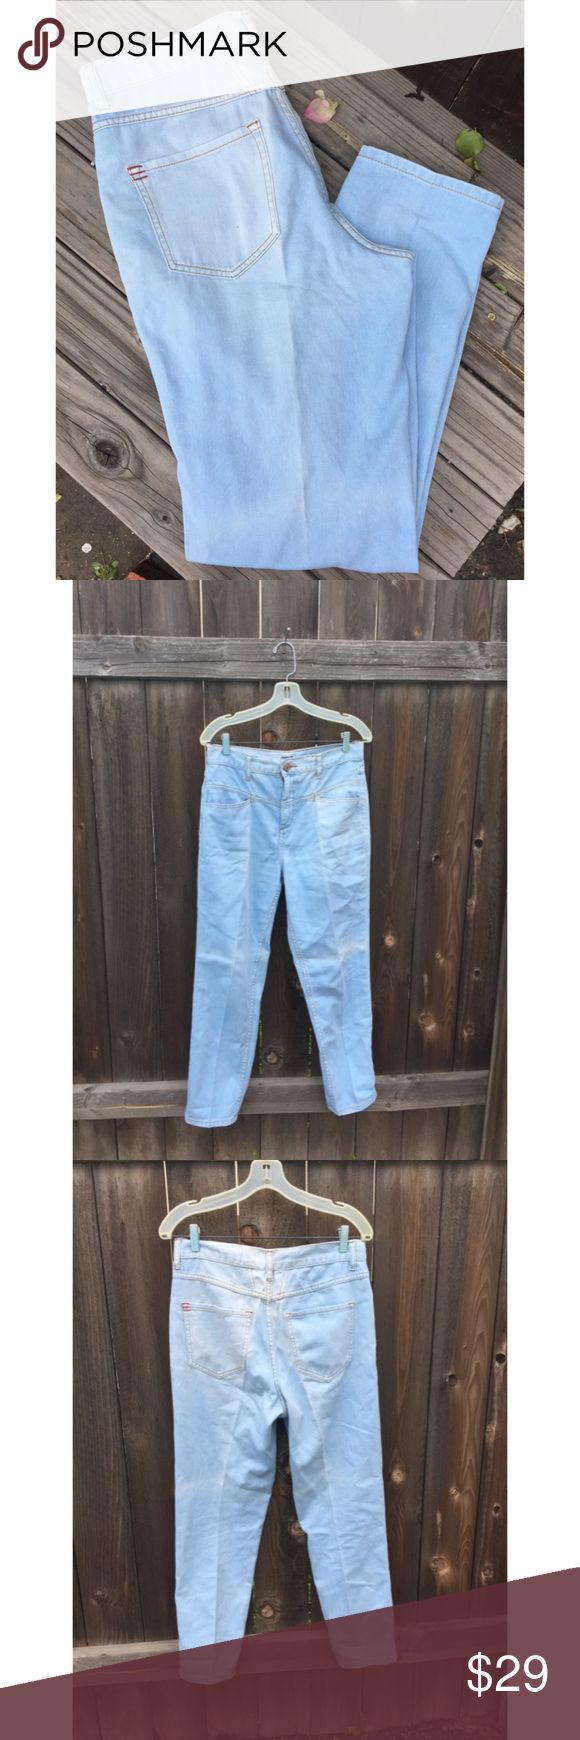 "BDG HIGH WAIST DENIM JEANS SZ 29 BDG HIGH WAIST DENIM JEANS  SZ 29 WAIST 16"" INSEAM 28"" FRONT AND BACK POCKETS LIGHT BLUE WASH  GOOD CONDITION BDG Jeans Straight Leg"